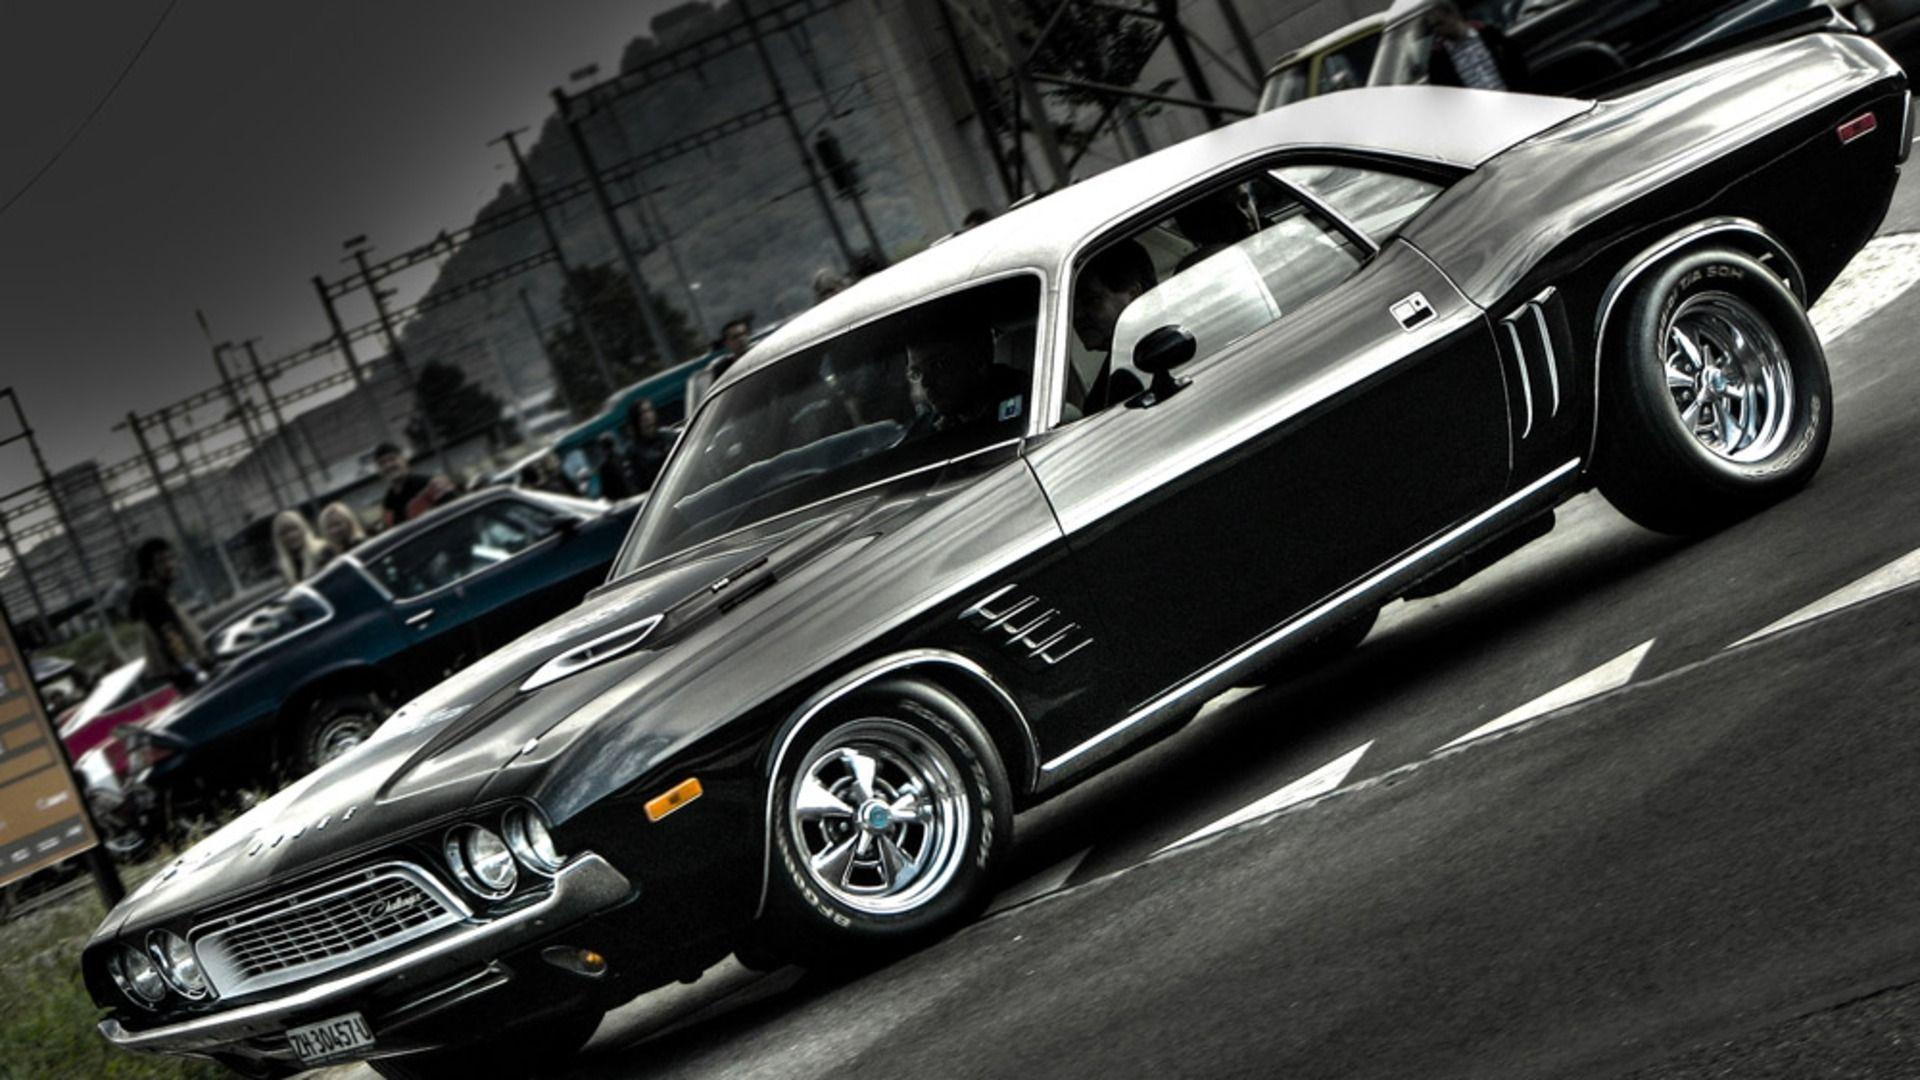 Classic muscle car wallpapers wallpaper cave for American classic motor cars